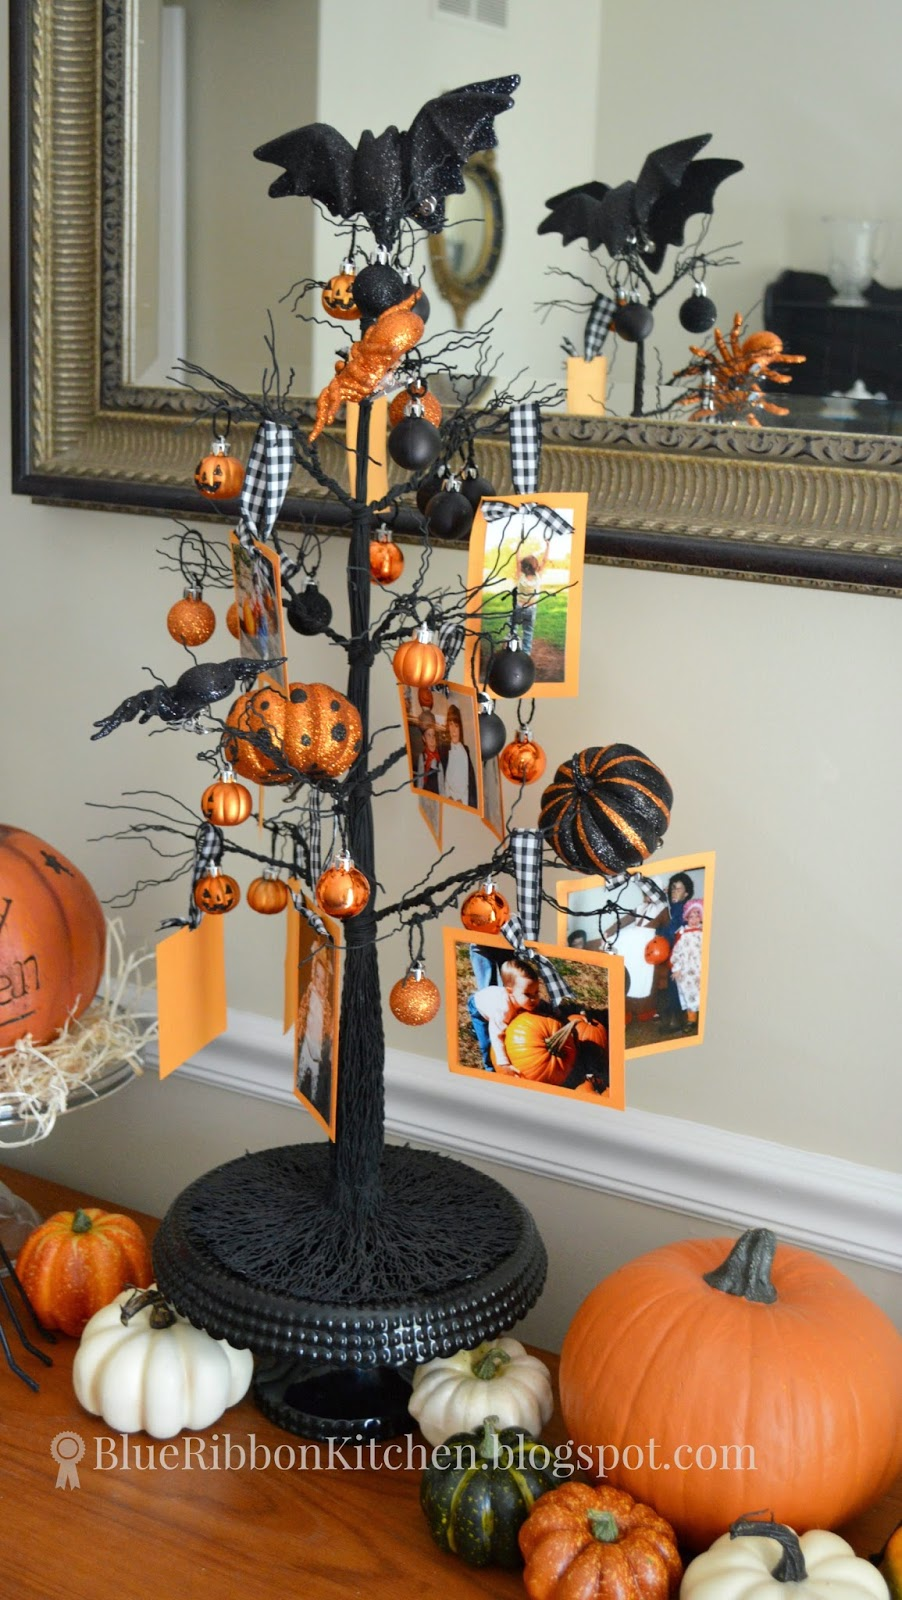 Blue Ribbon Kitchen: HALLOWEEN PHOTO FAMILY TREE